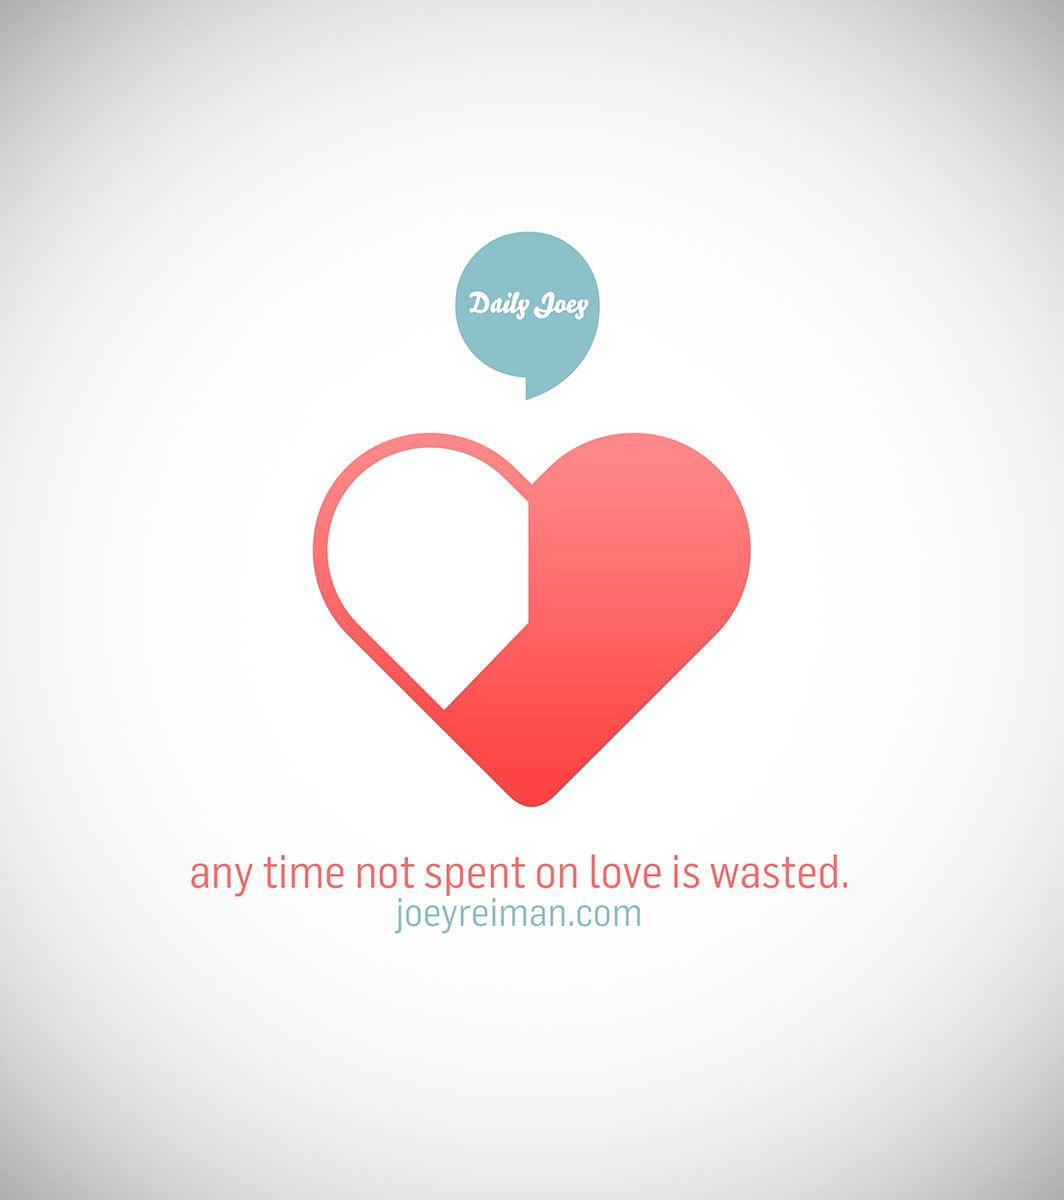 Any time not spent on love is wasted. #purpose #quotes